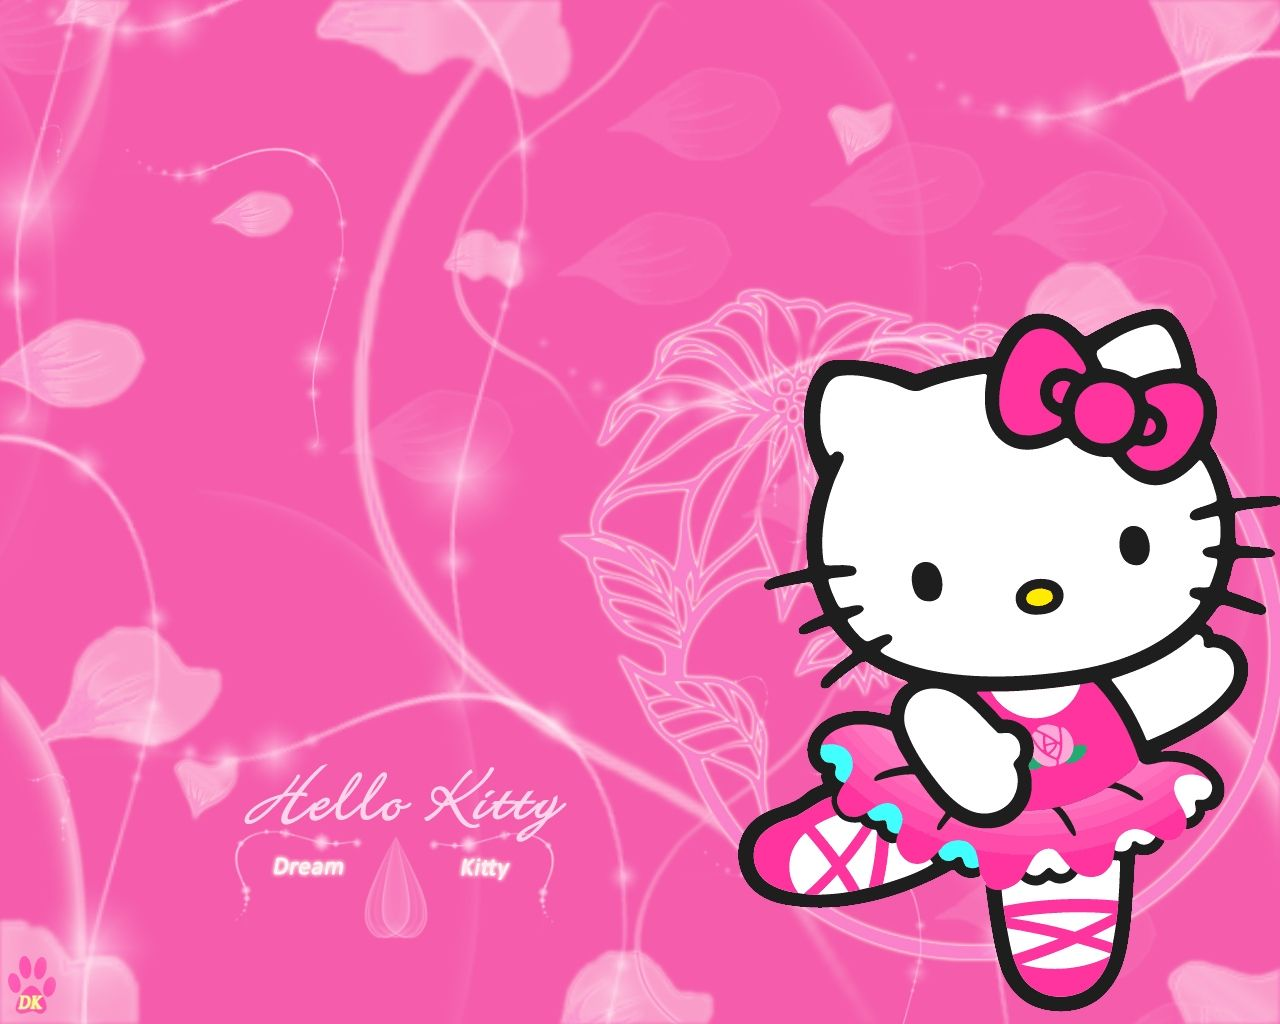 1280x1024 Hello Kitty Online images hello kitty HD wallpaper and background ...